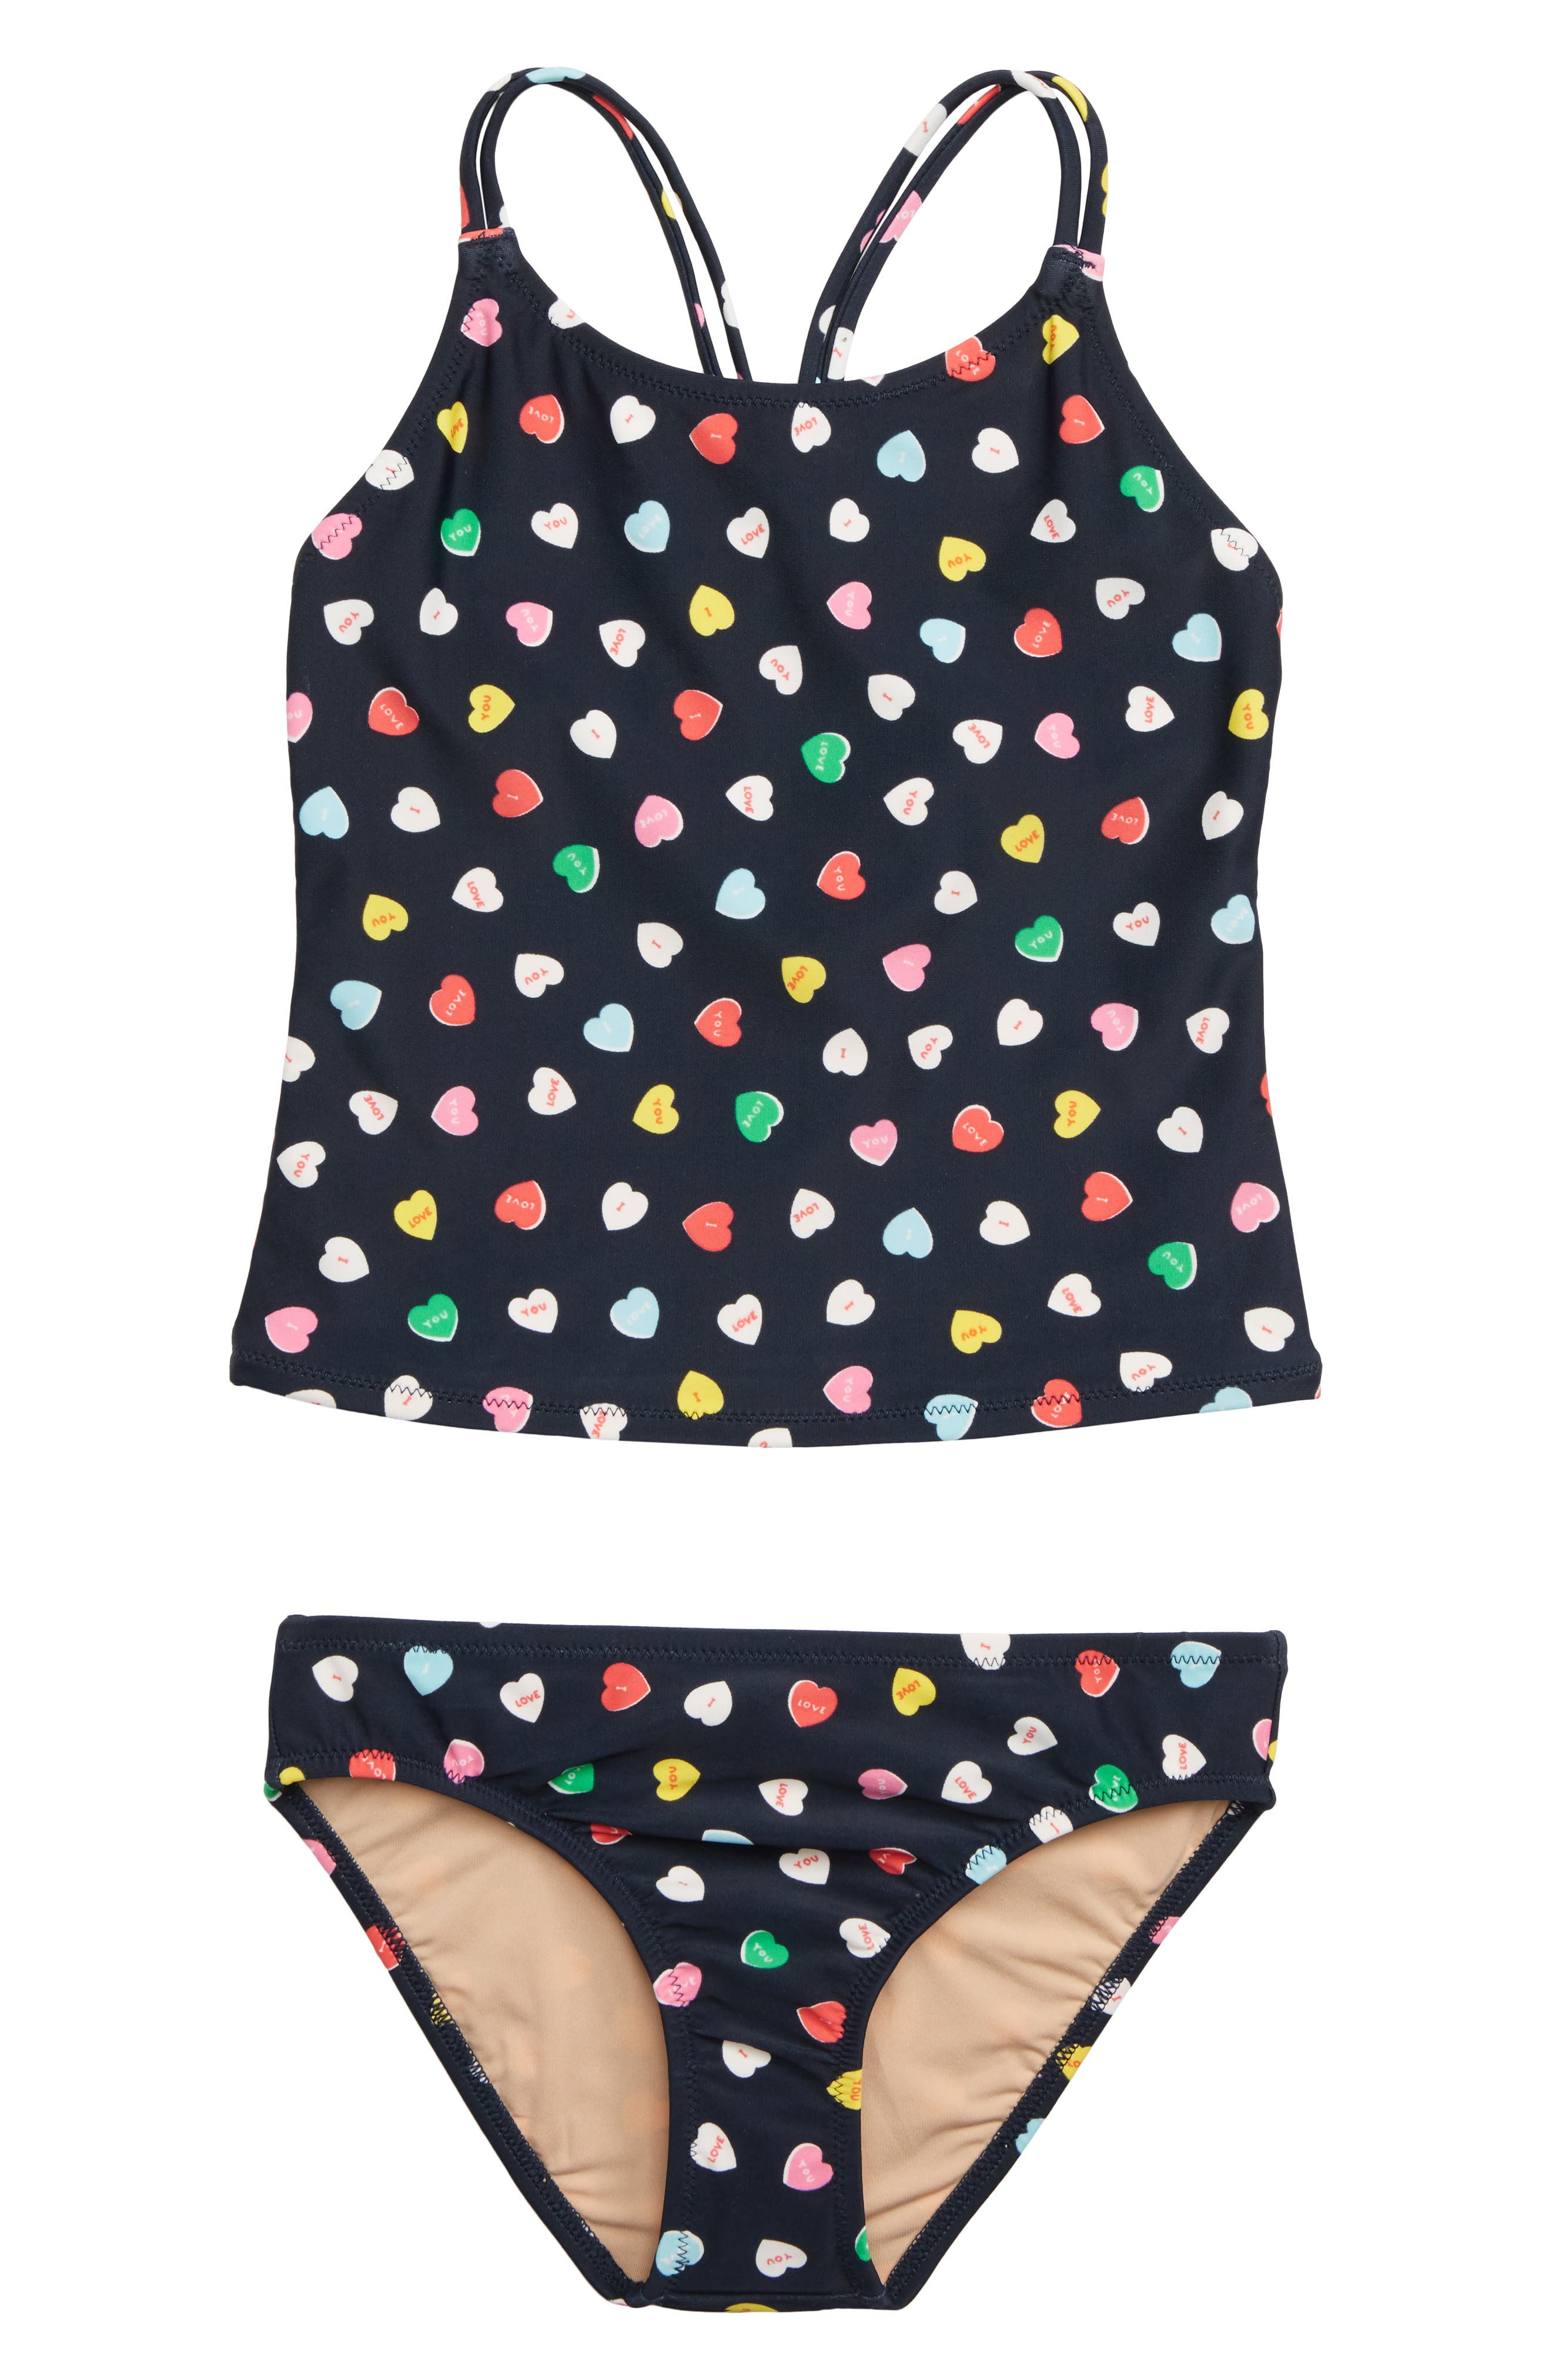 CREWCUTS BY J.CREW Tankini Two-Piece Swimsuit, Main, color, PINK RED MULTI WX3623